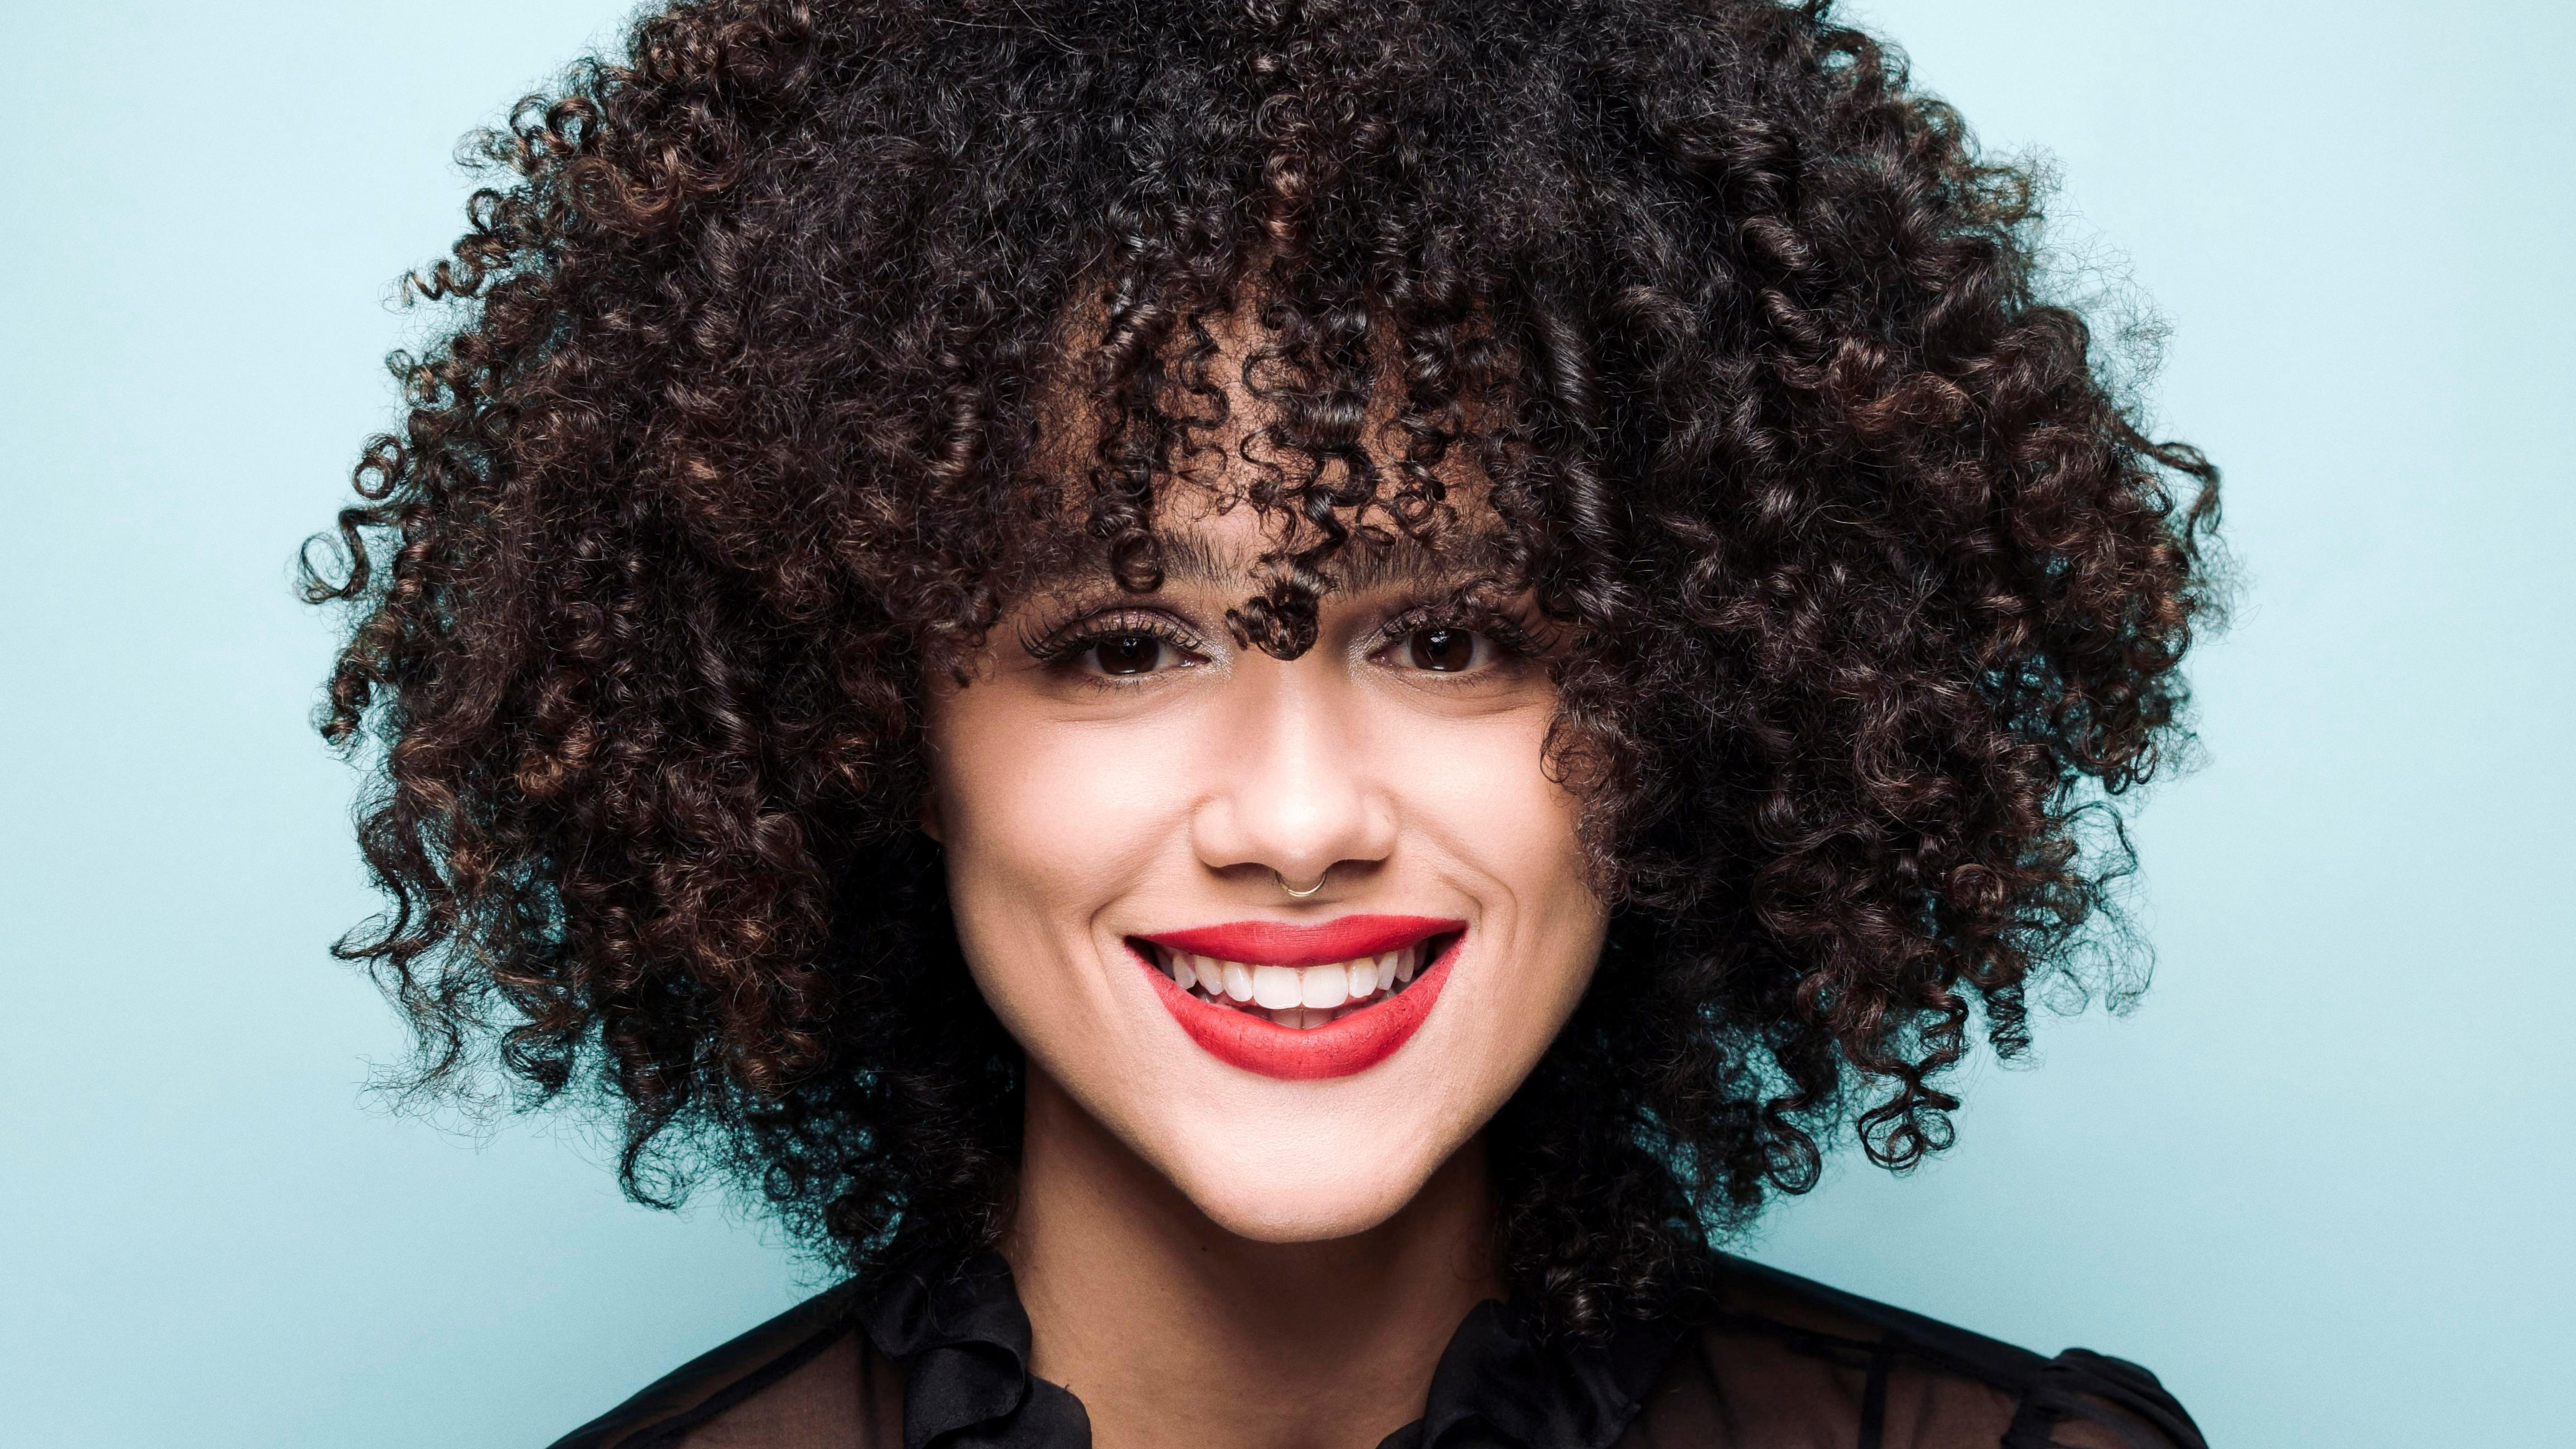 Nathalie Emmanuel nudes (82 pics), Is a cute Topless, Instagram, butt 2019